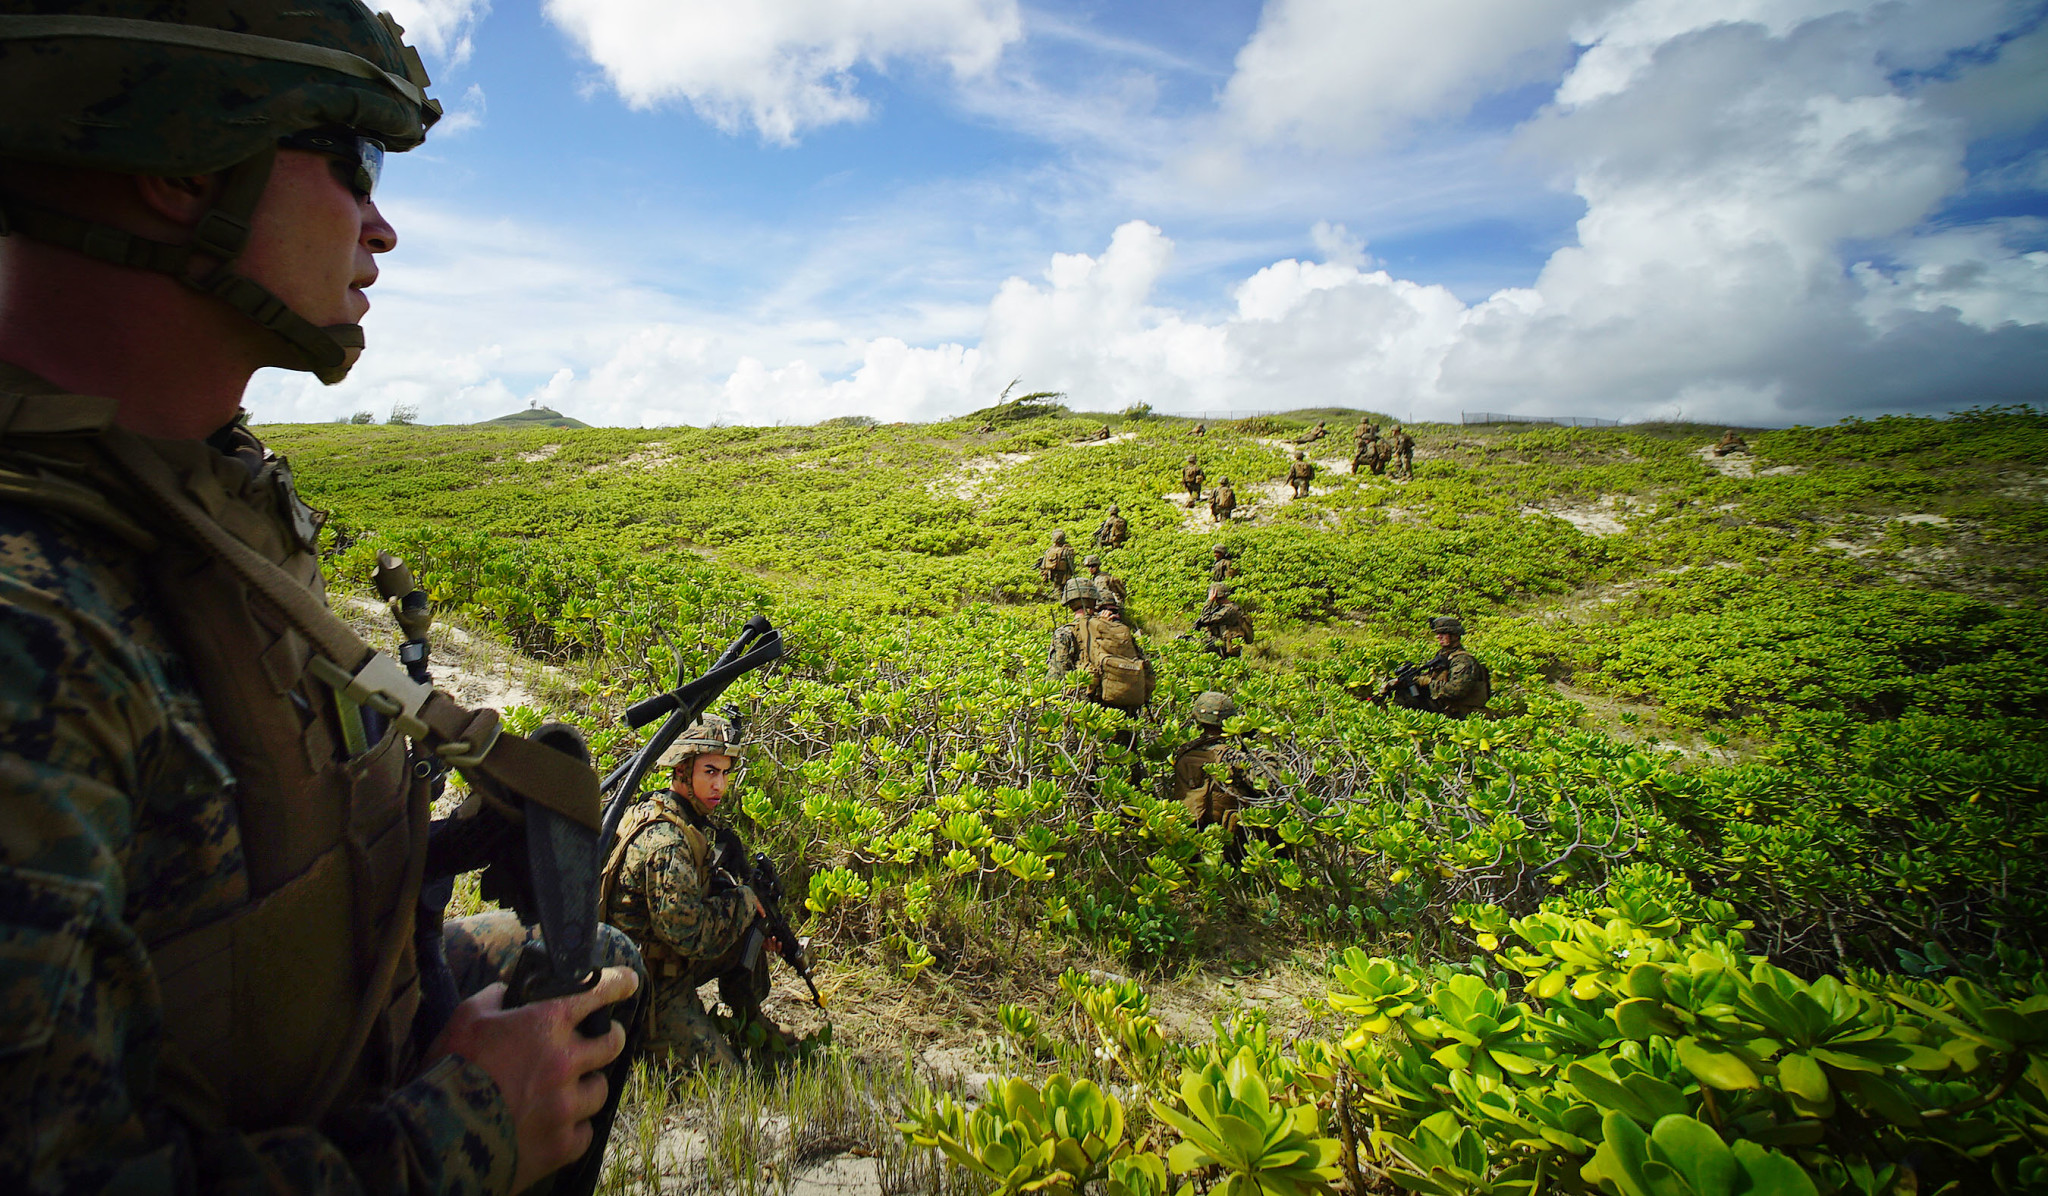 <p>The troops moved inland as more of the beach was secured. While amphibious operations have long been a staple of the Marines, a growing number of nations friendly to the U.S. consider the training important.</p>